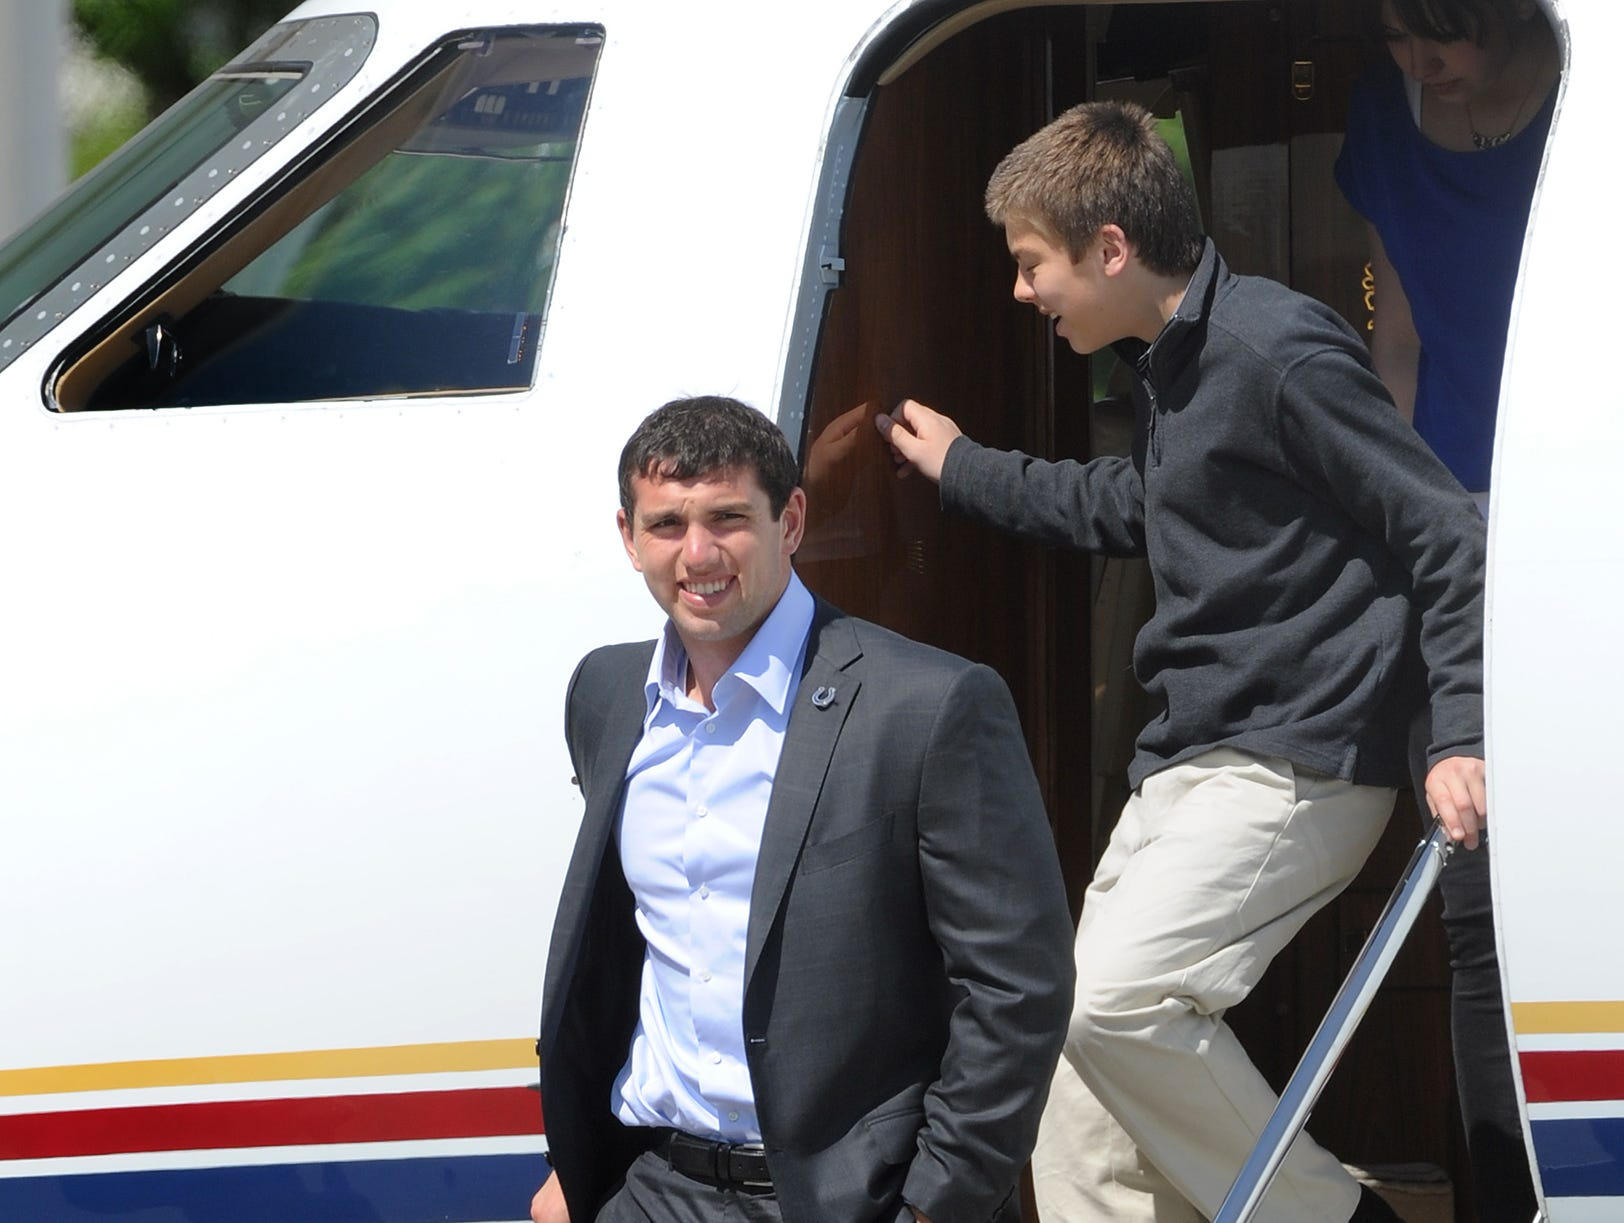 Indianapolis Colts Andrew Luck arrives at the Indianapolis International Airport with the Irsay daughters via a private jet the day following the Colts picking him with the #1 overall in the NFL draft April 27, 2012.